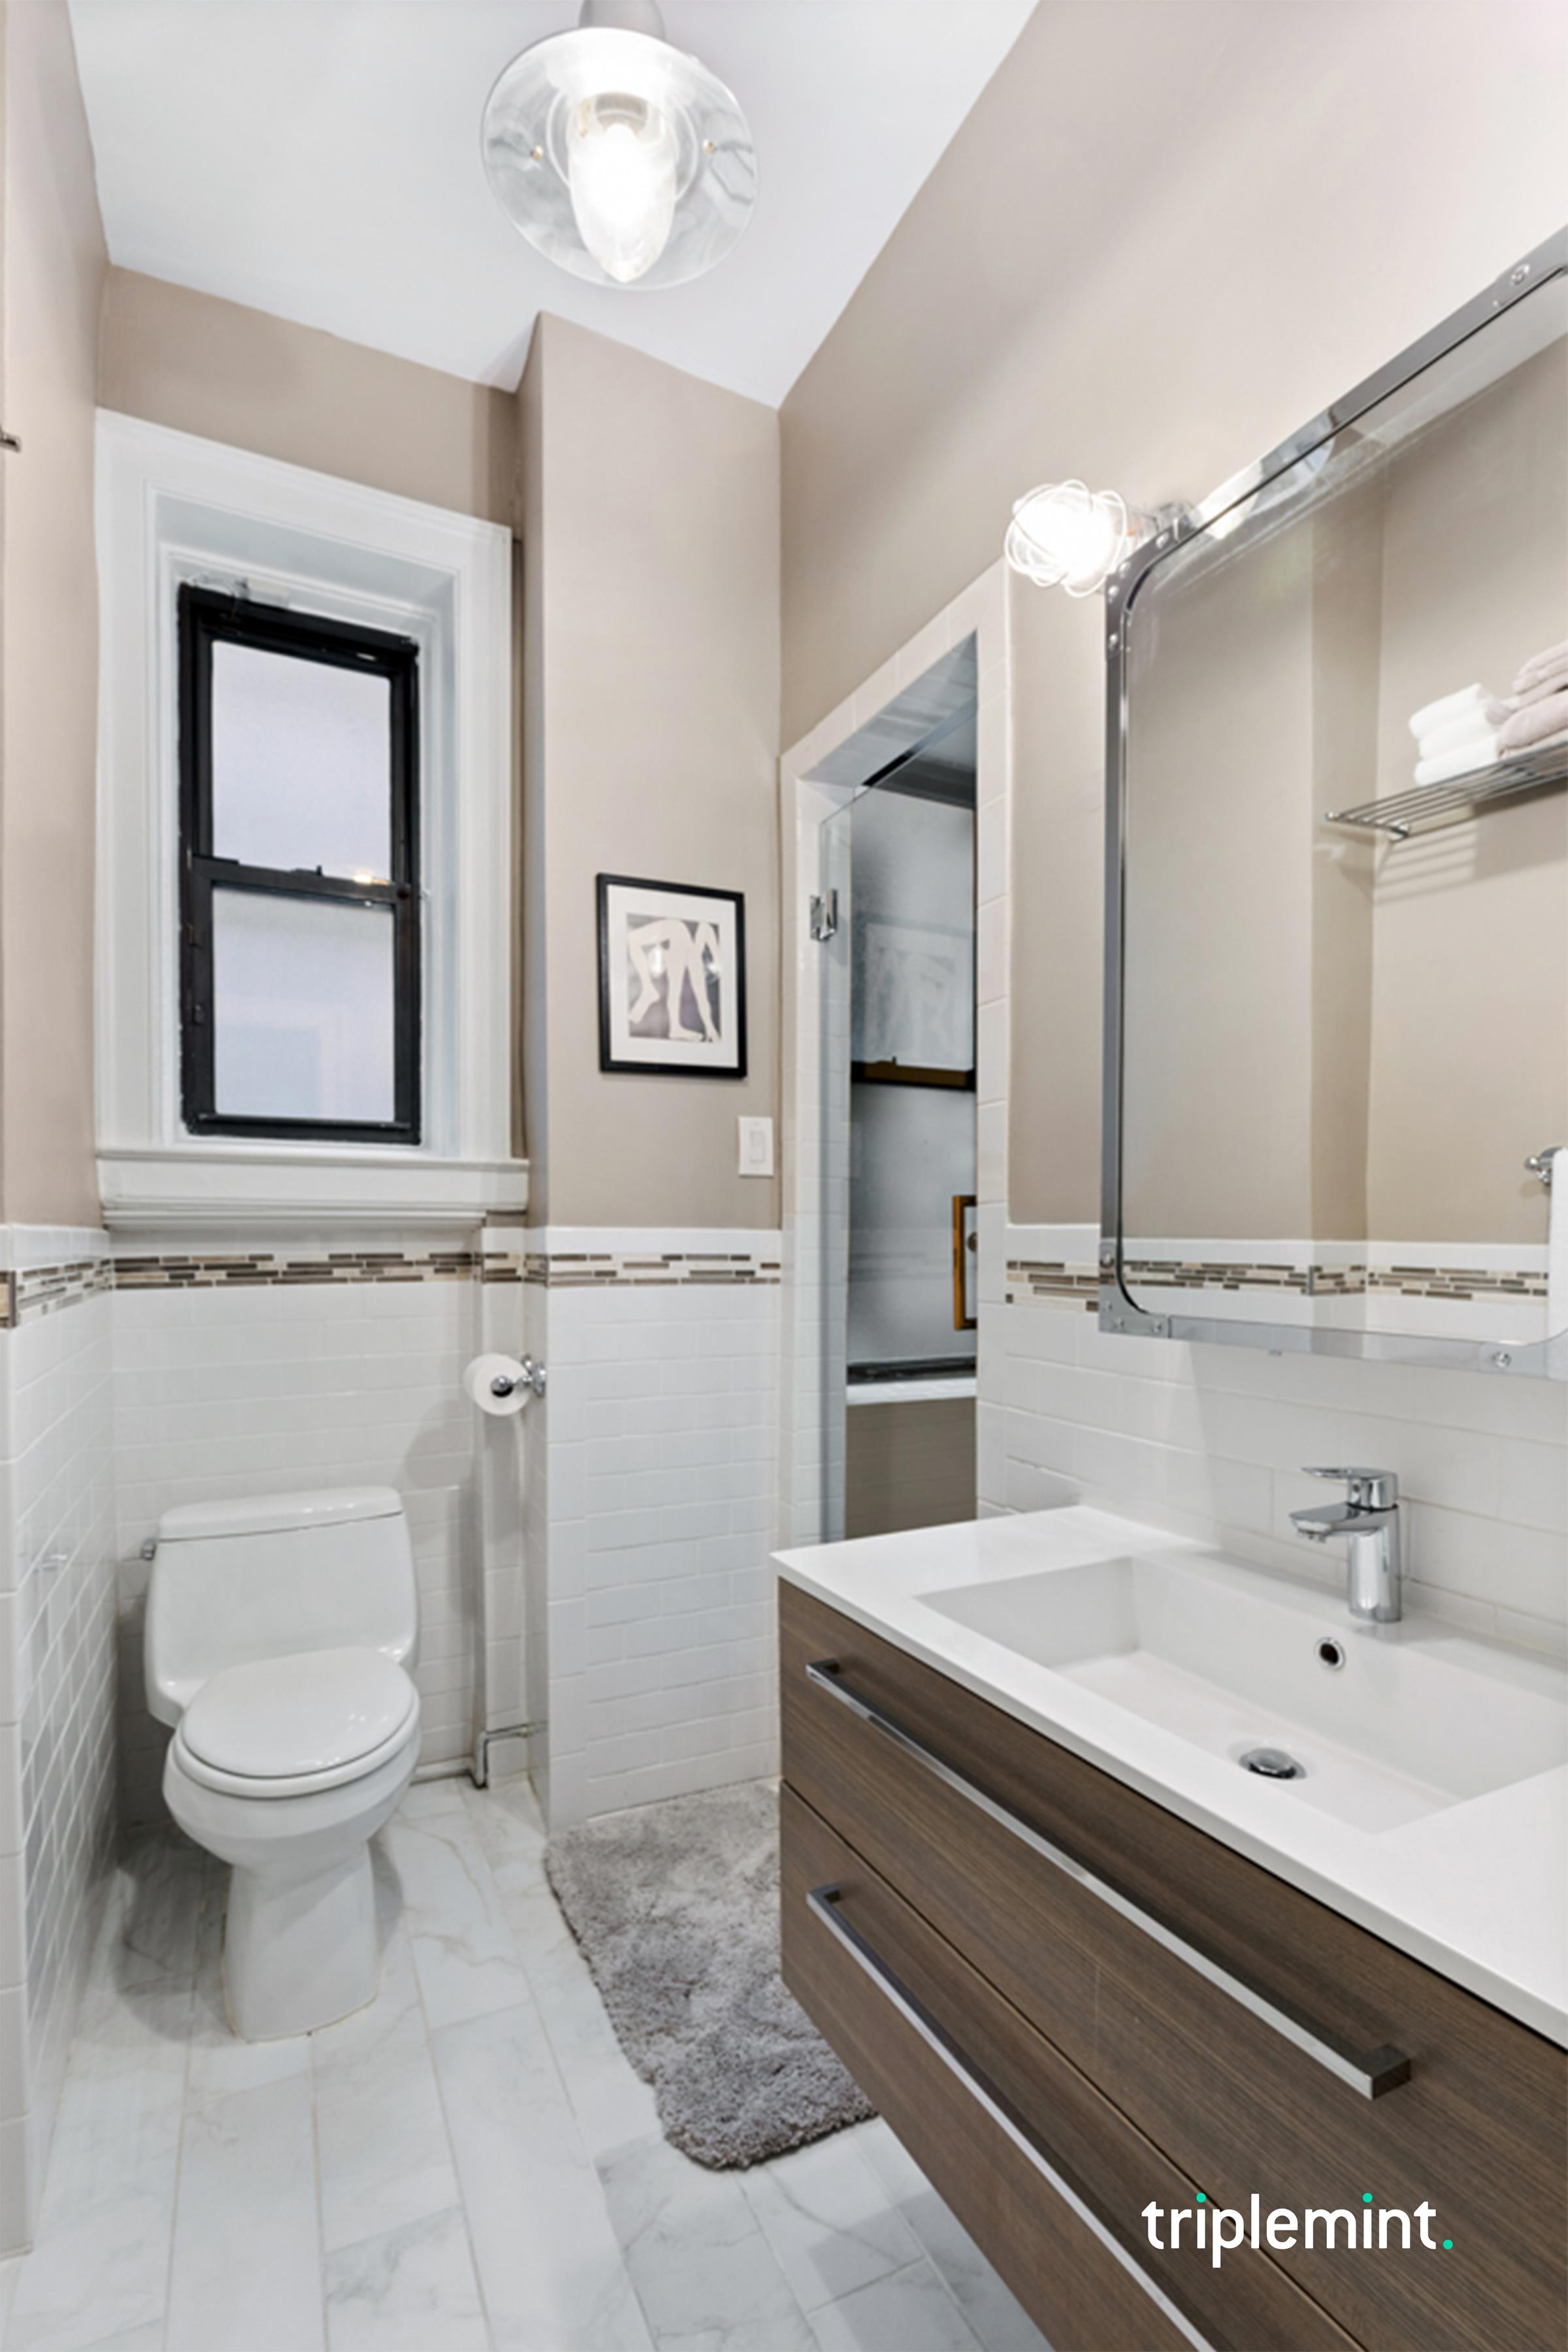 611 West 111th Street Morningside Heights New York NY 10025